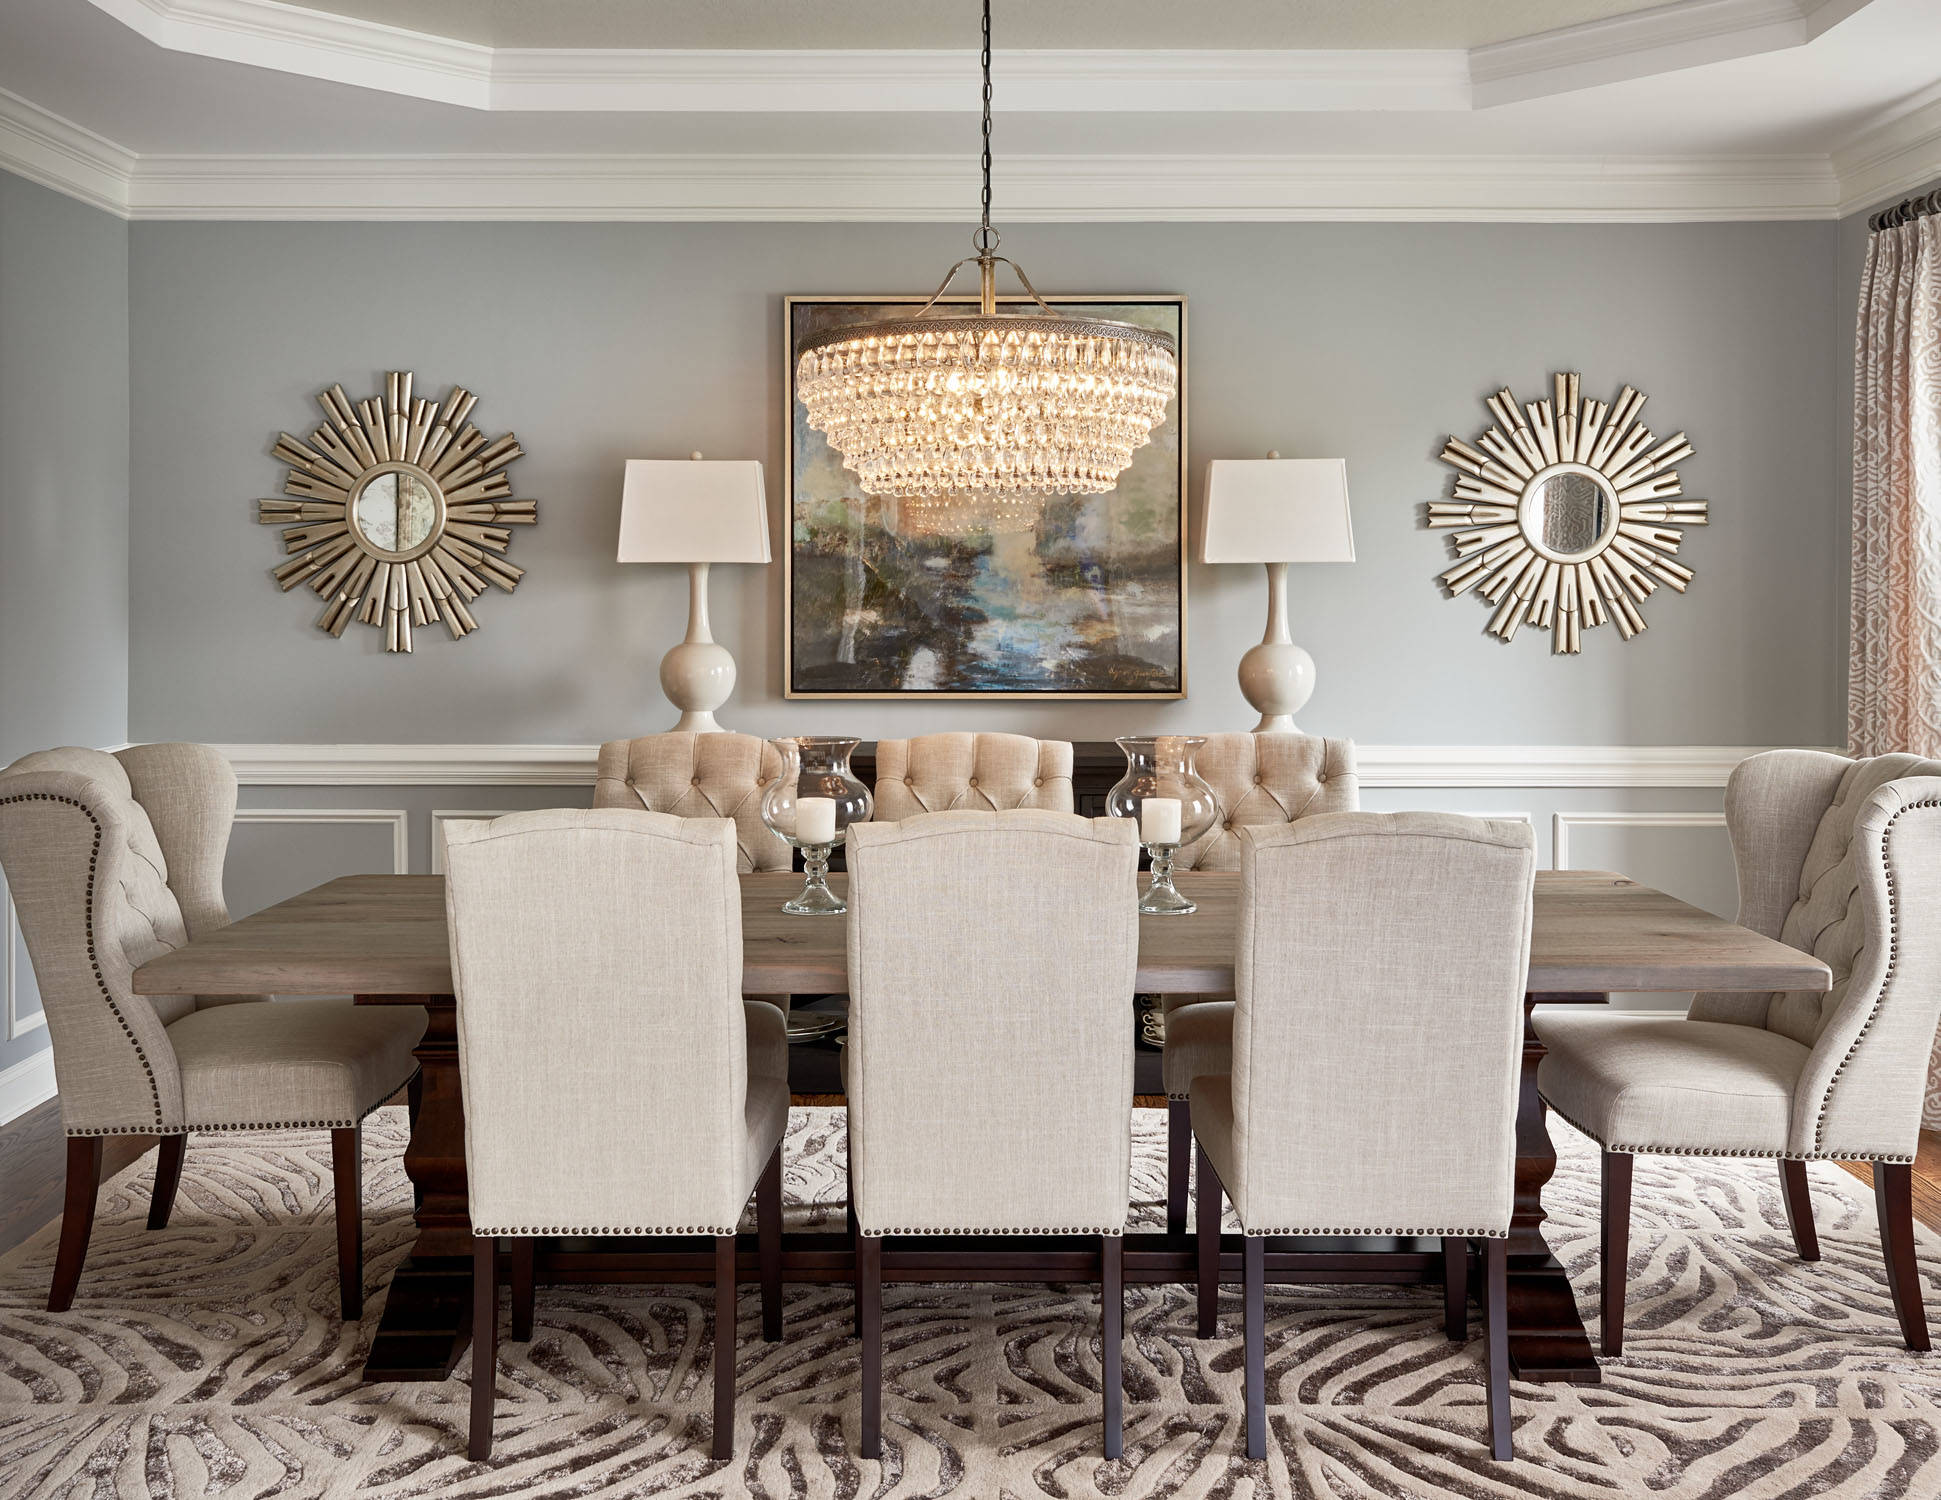 dining-room-light-white-beiege-netural-color-palette-glamorous-modern-eclectic-stunning-logn-wood-weatehred-table-solid-wood-how-to-choose-quality-furniture-tulip-studded-chair-custom